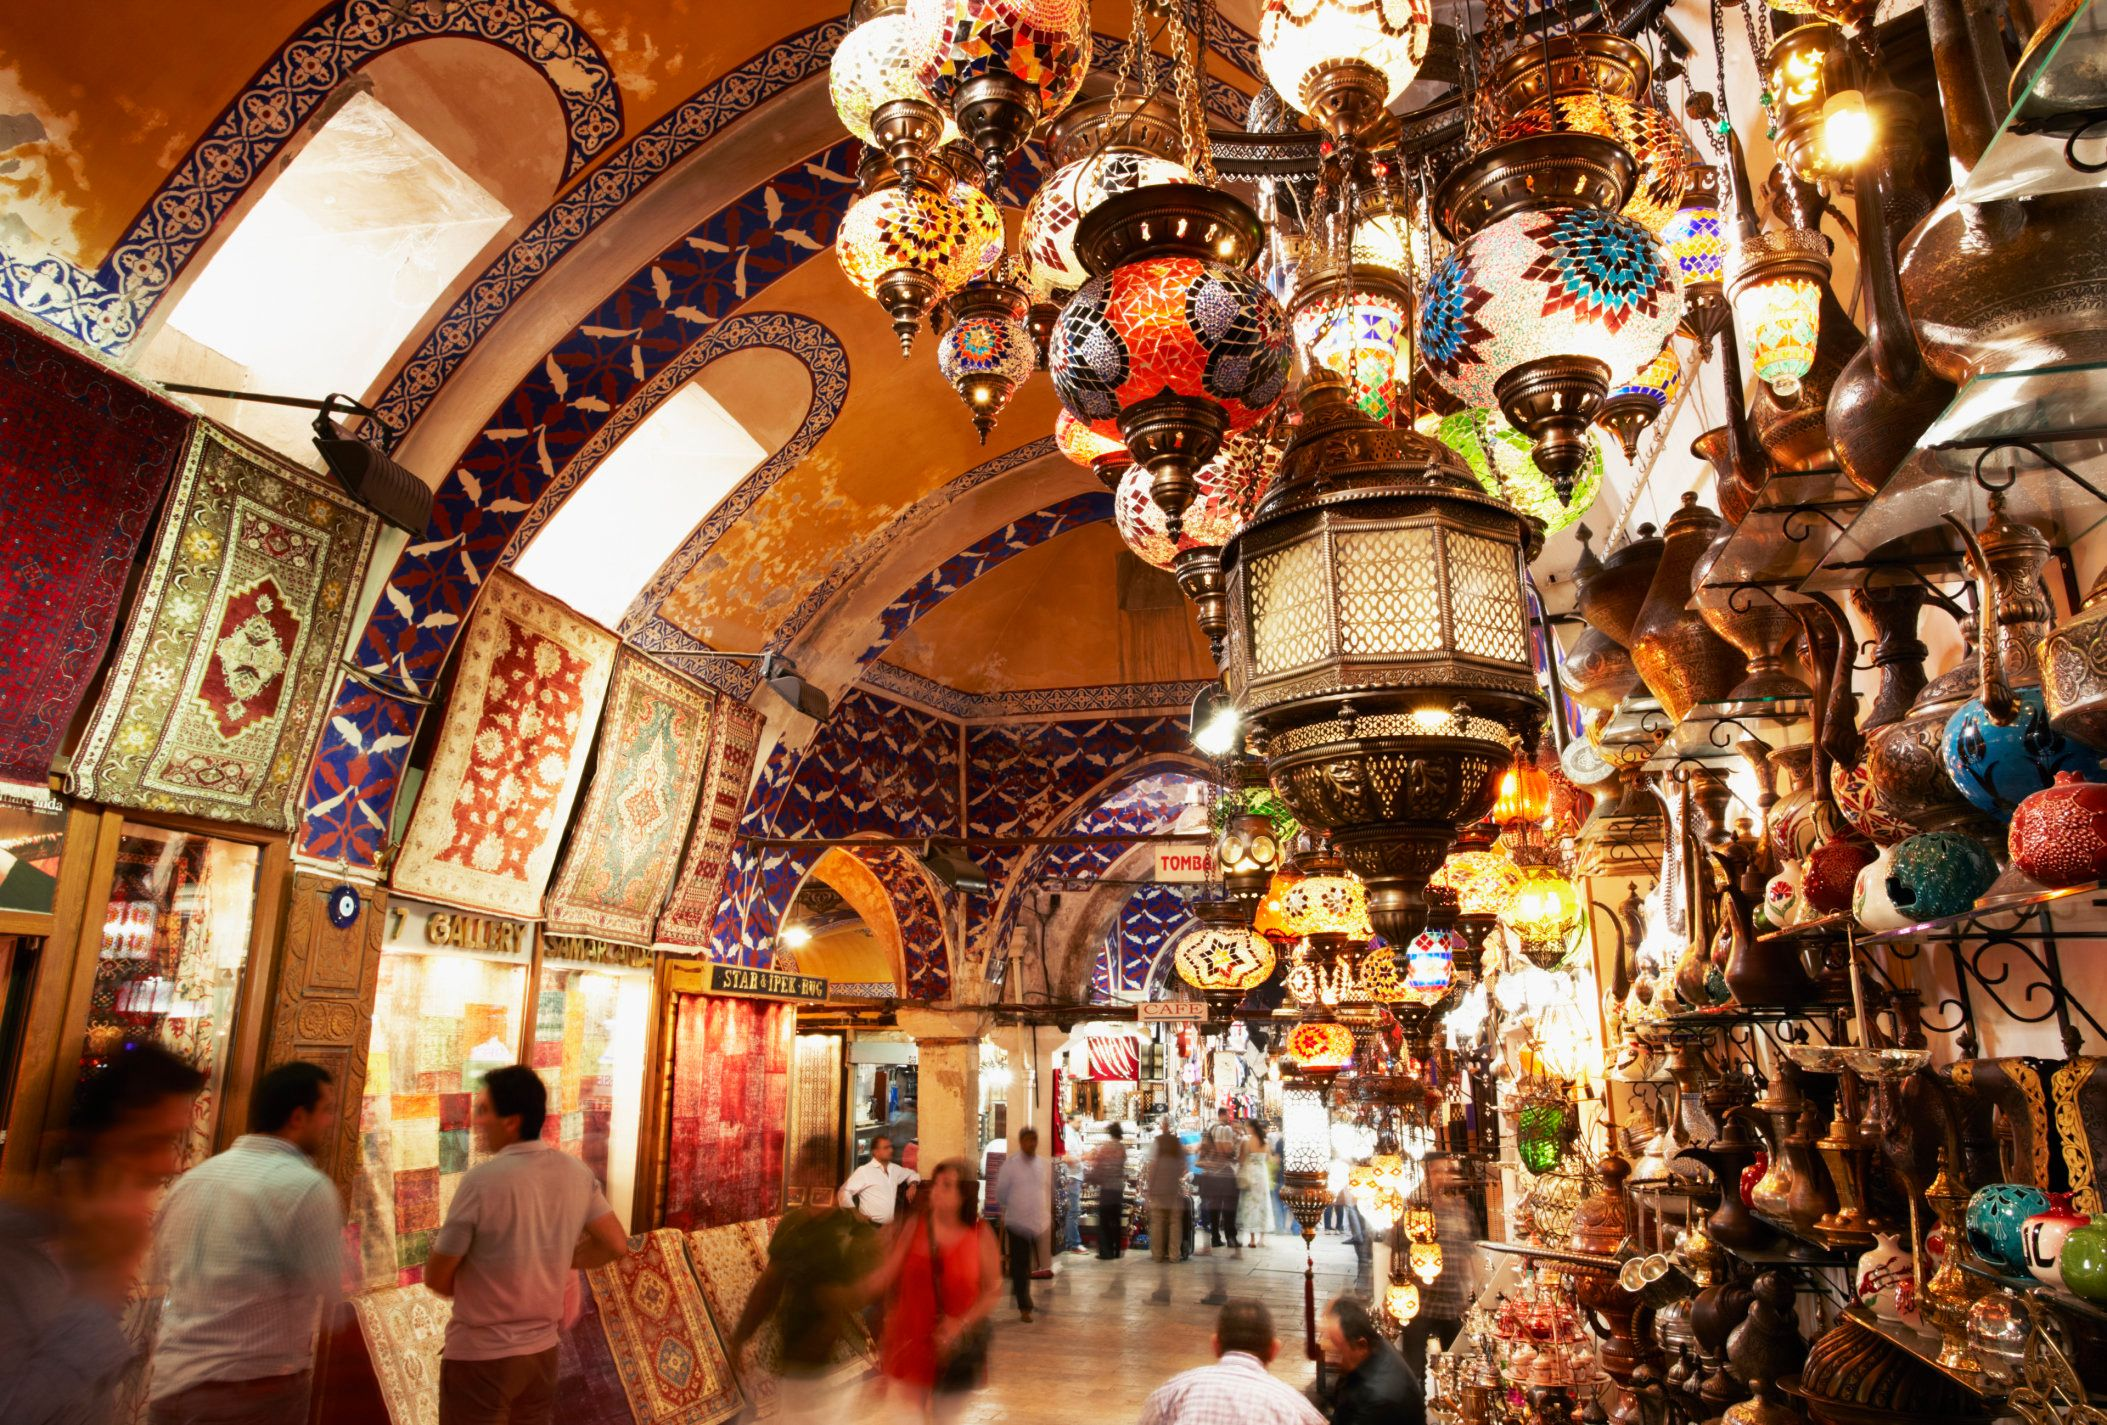 You can visit expansiveindoor malls, or you could spend all your time exploring the city's bustling bazaars. We'd pick